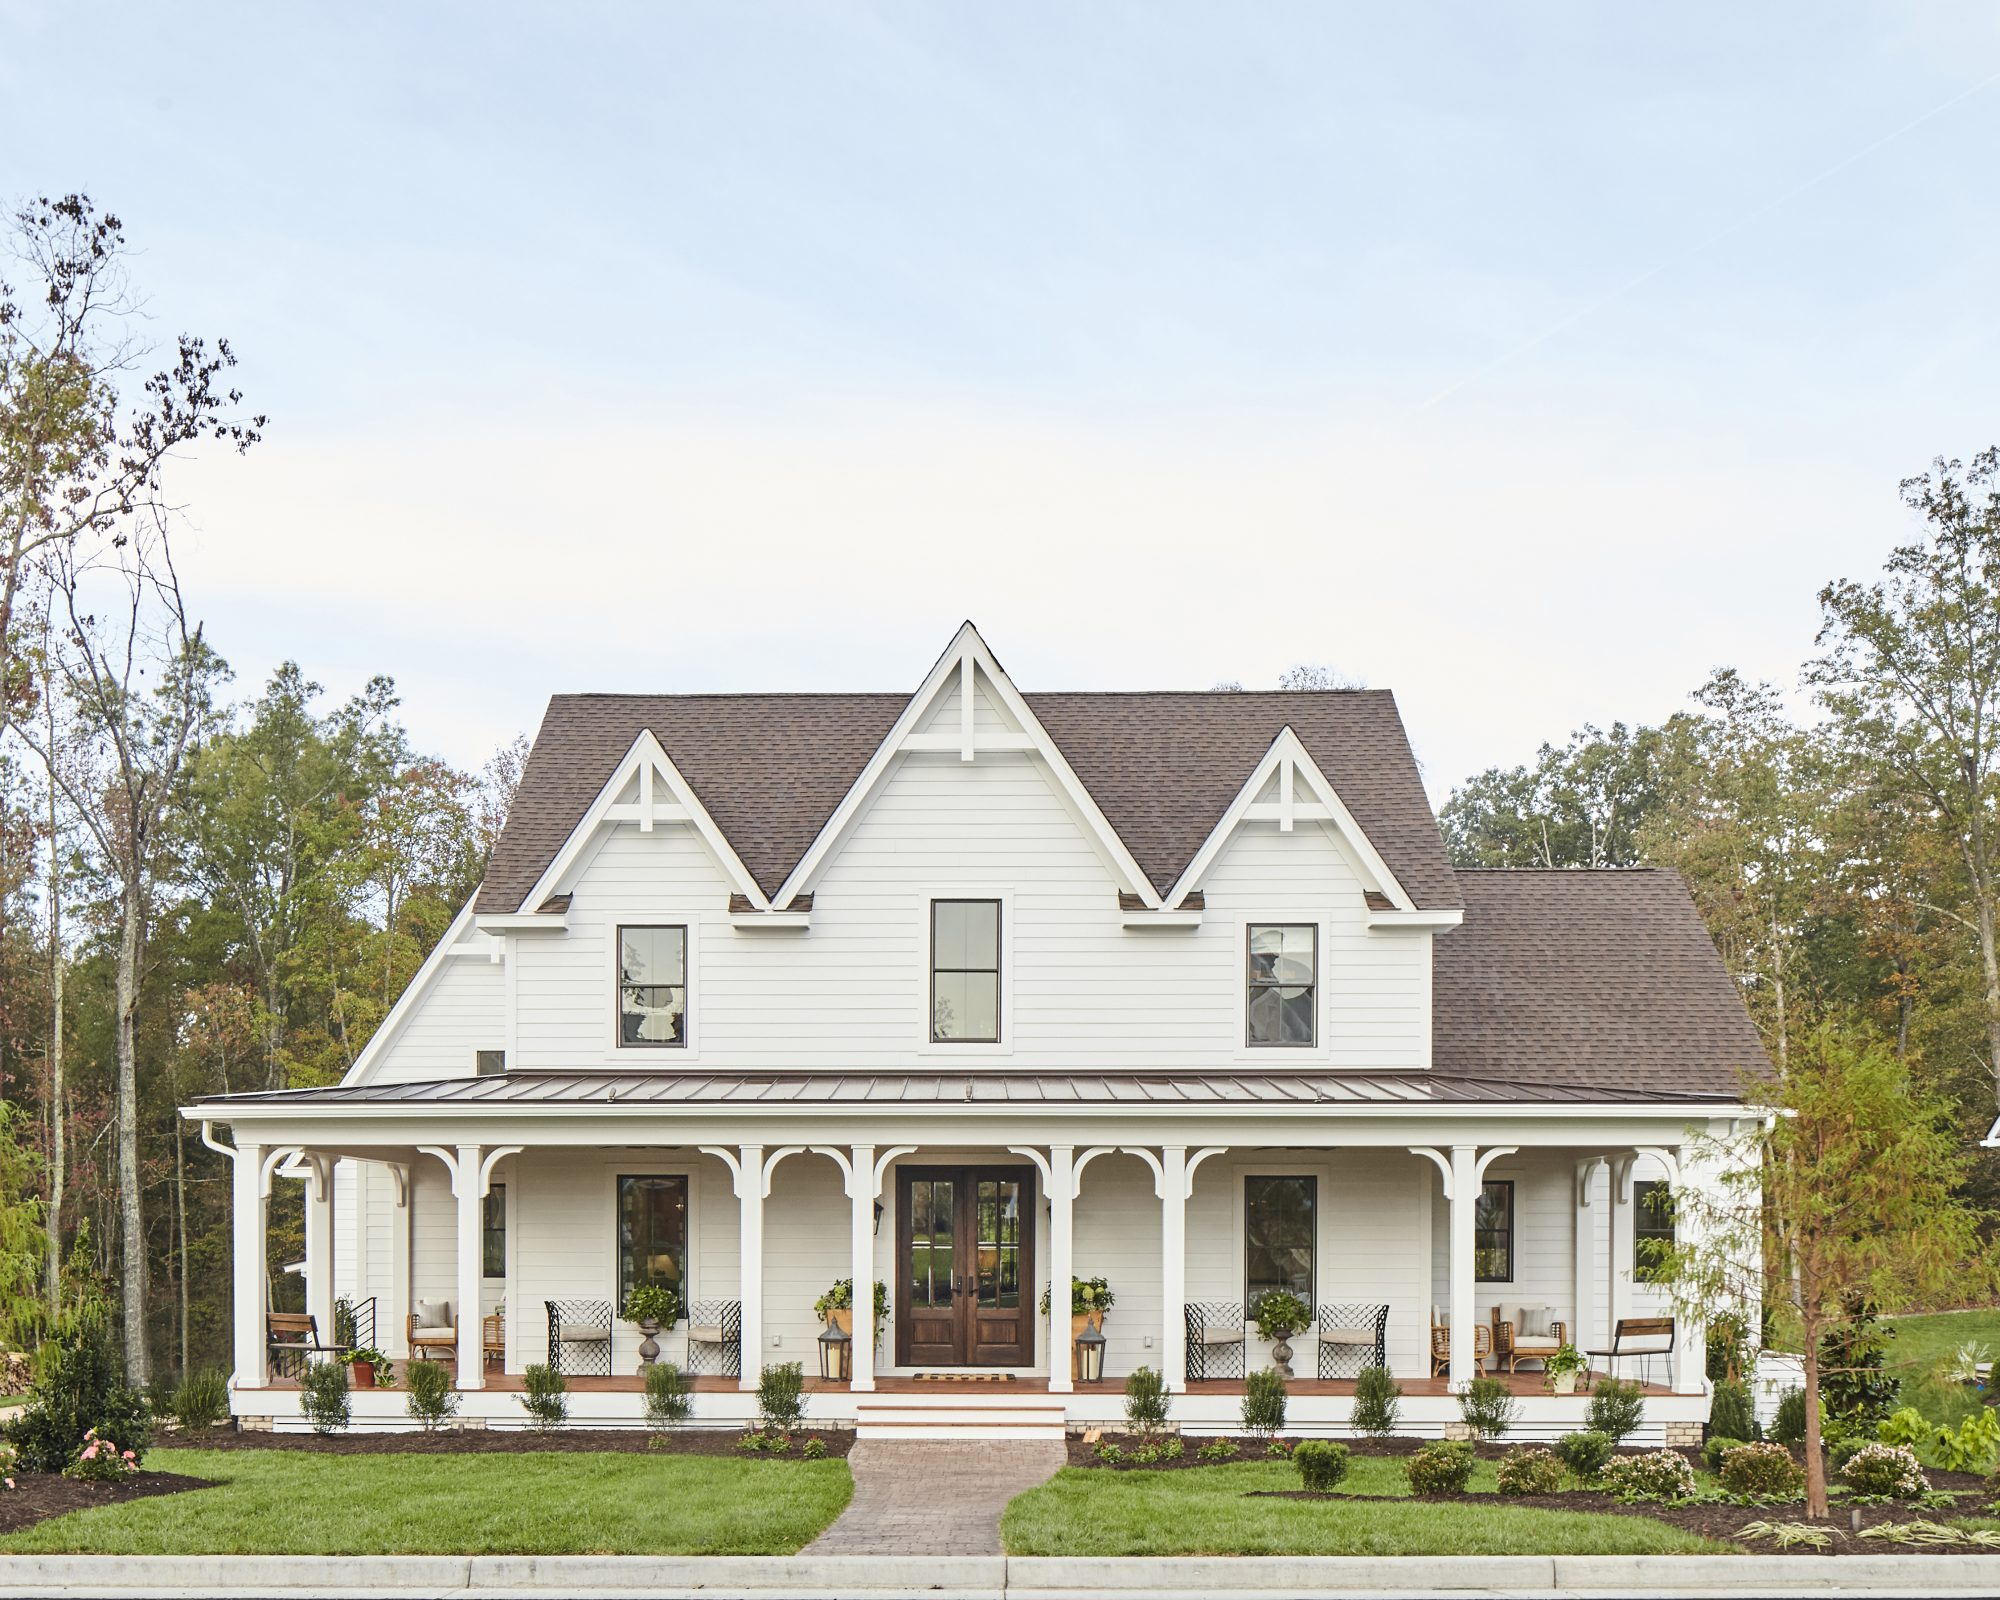 Southern Gothic Farmhouse House Plan Rendering